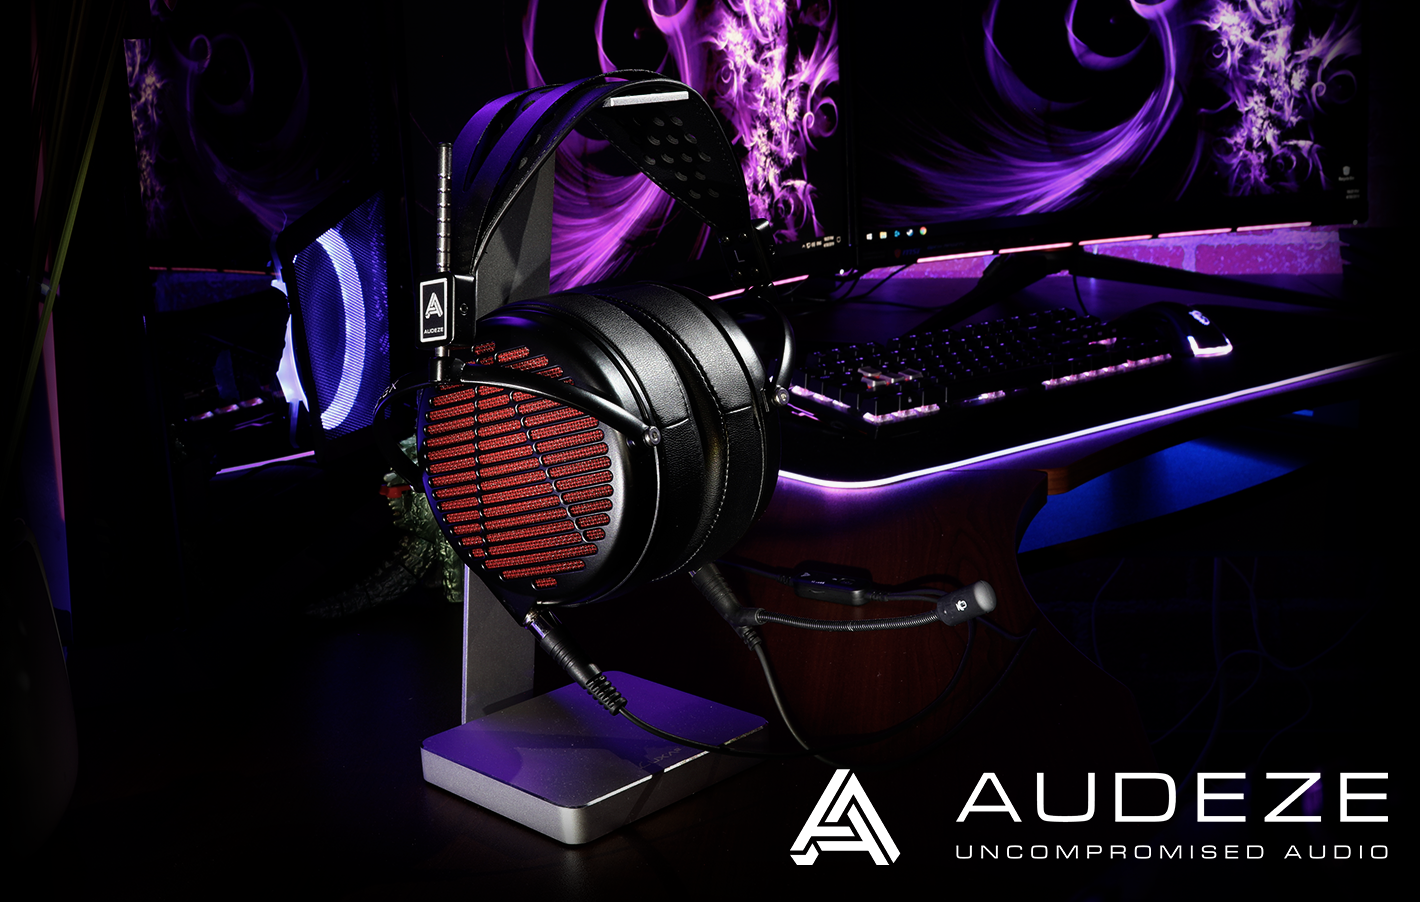 New Product Announcement | Audeze Announces The LCD-GX Audiophile Gaming Headphone 2